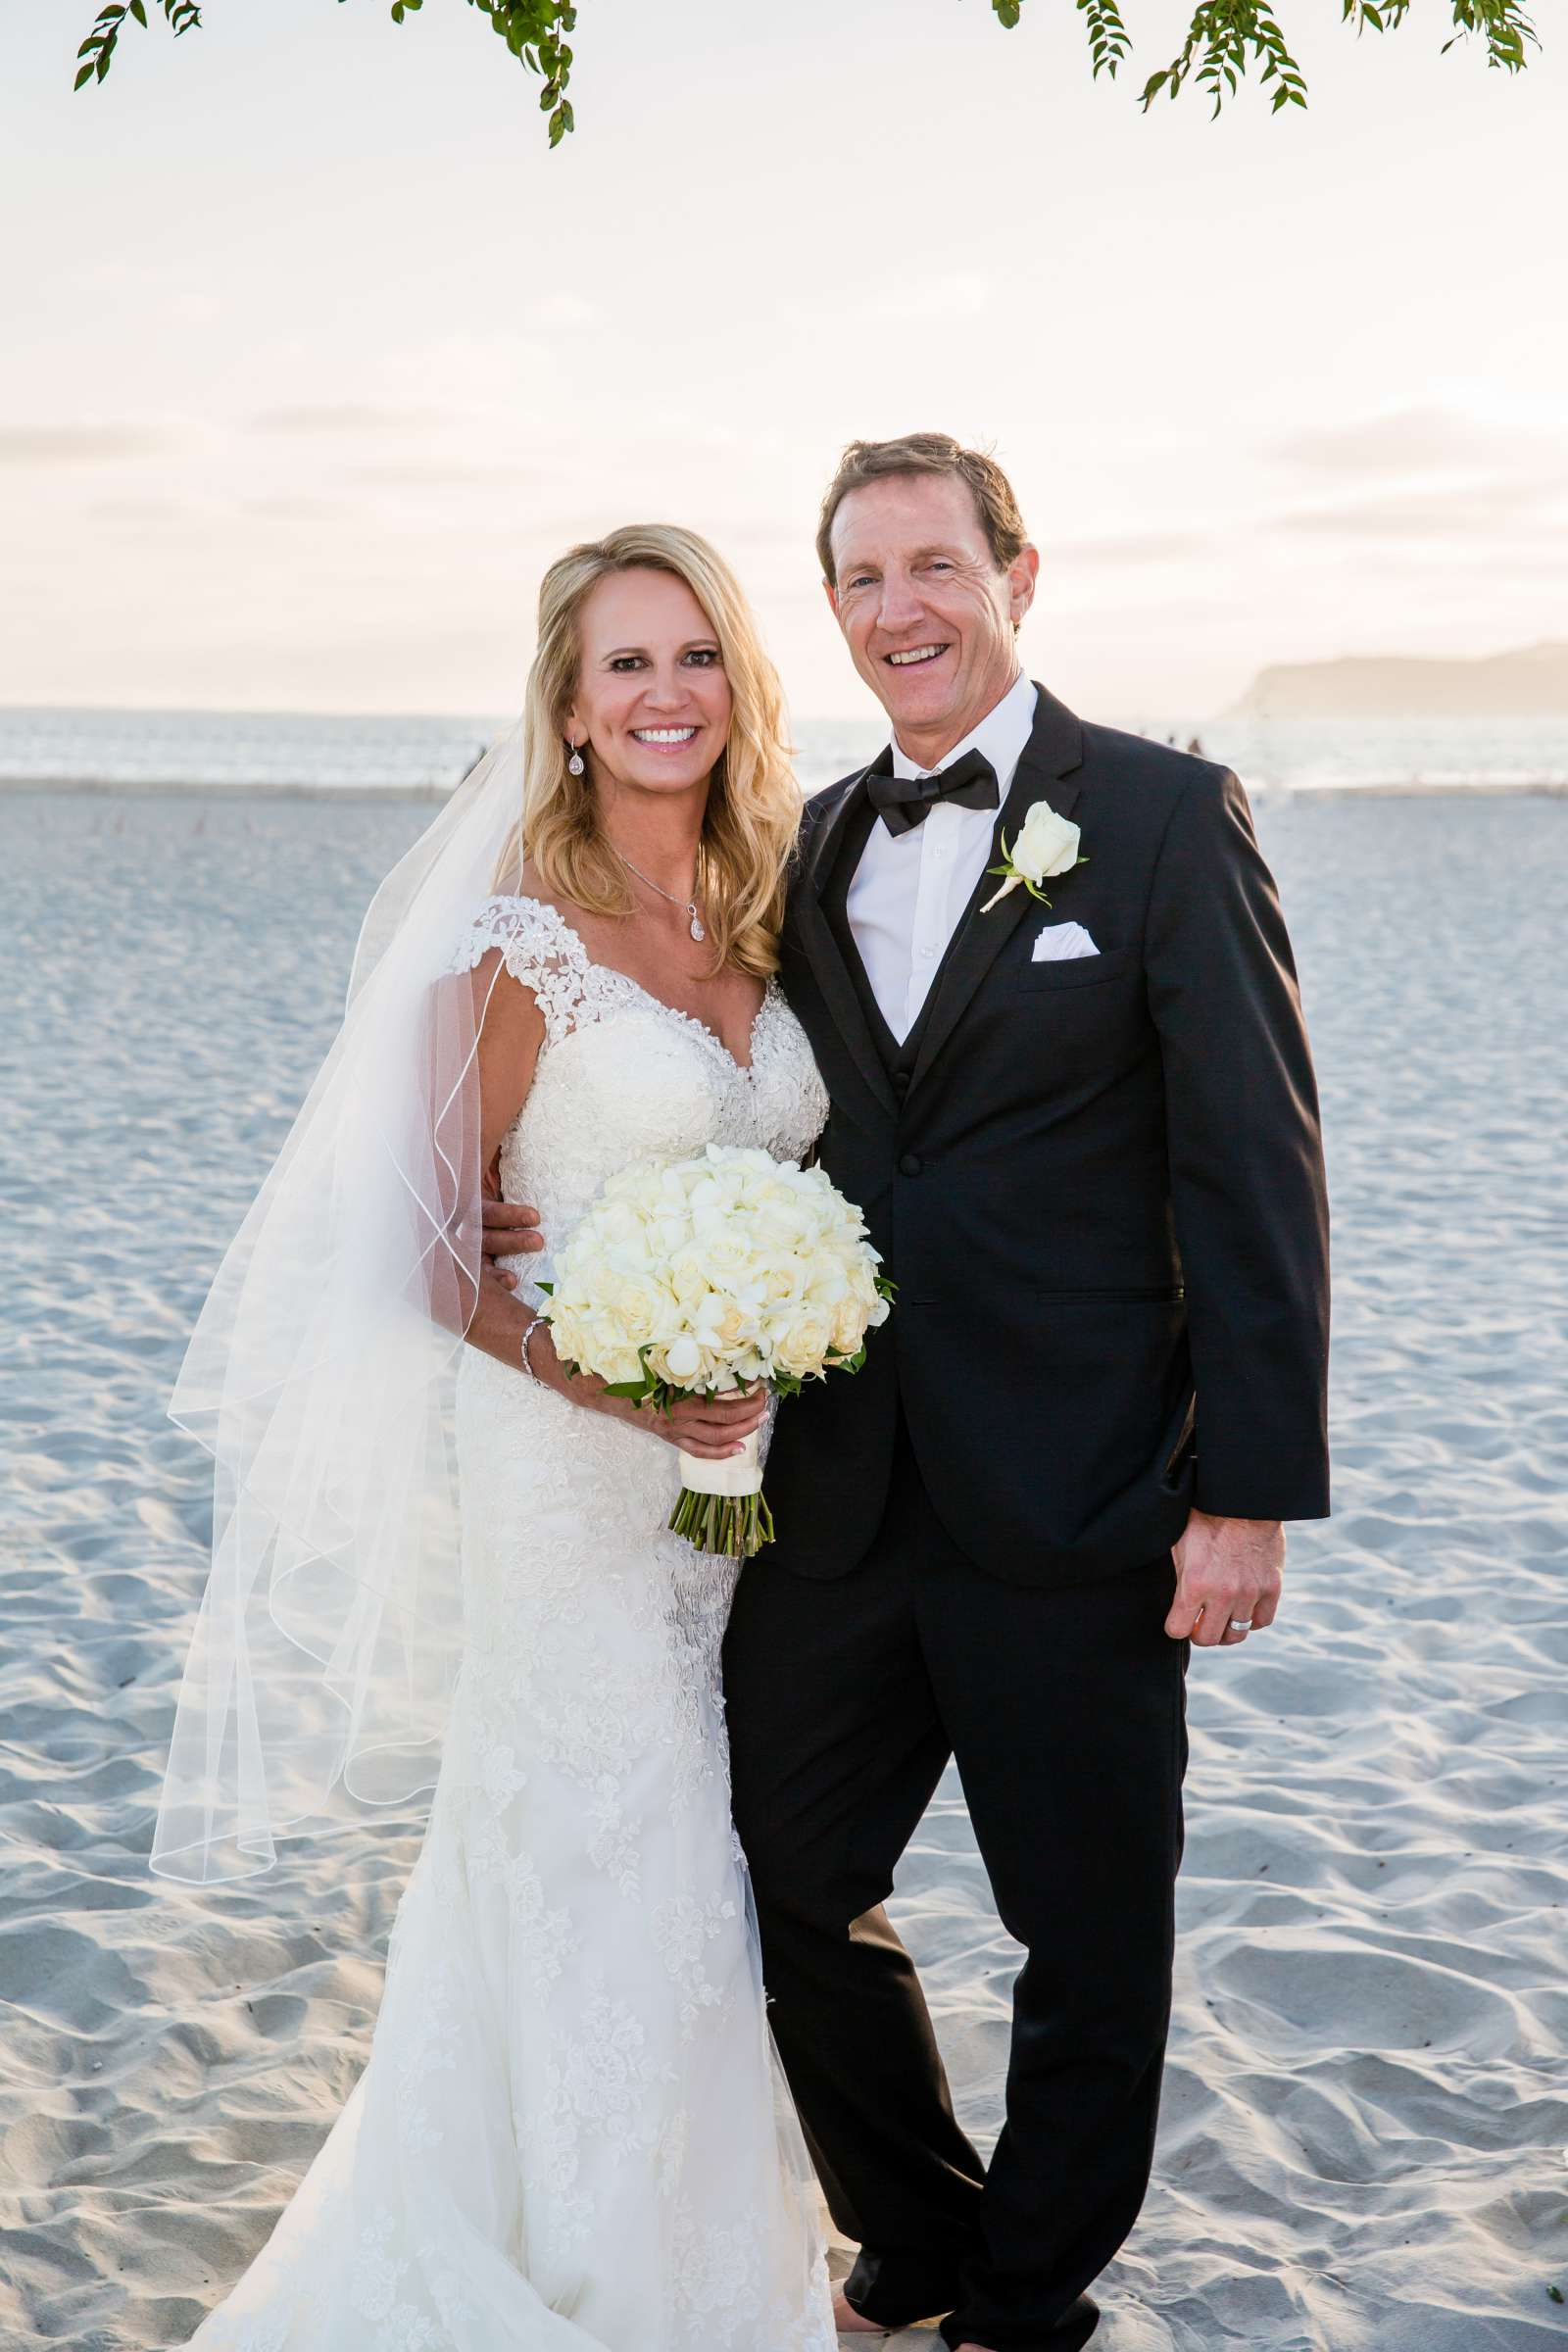 Hotel Del Coronado Wedding coordinated by Creative Affairs Inc, Diane and Paul Wedding Photo #68 by True Photography